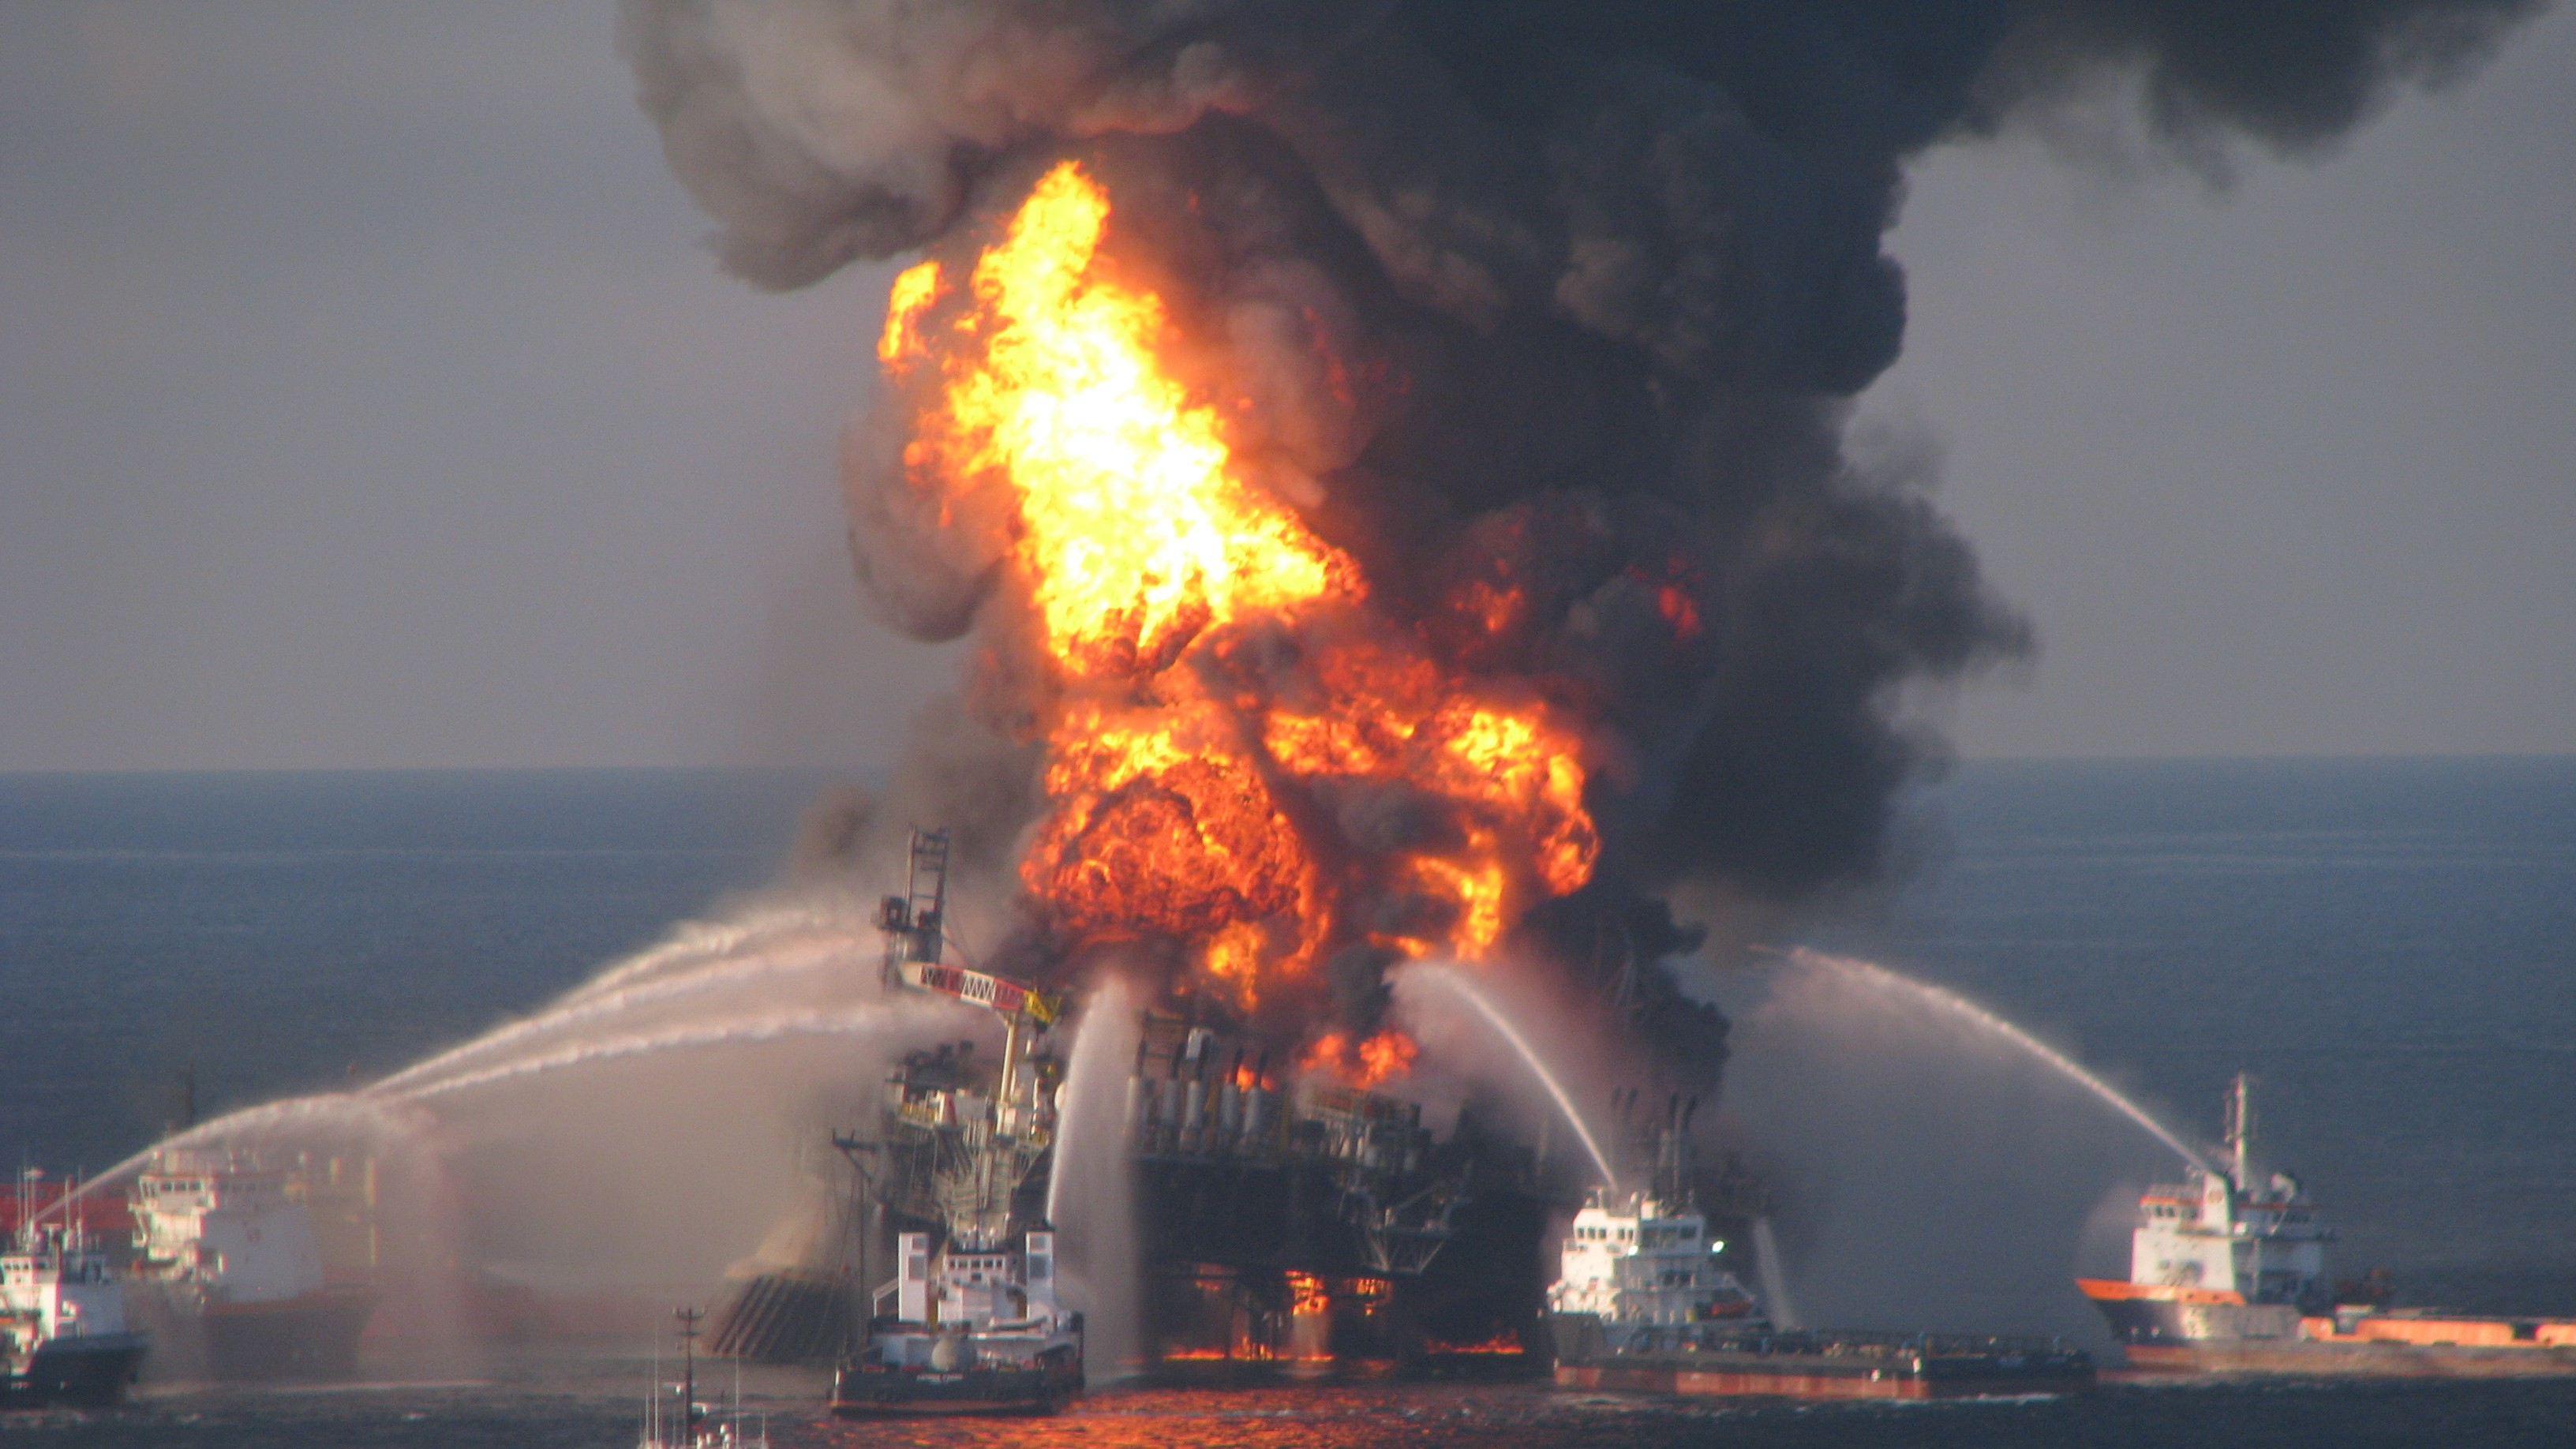 Scientists Say An Area The Size Of Rhode Island Is Coated With Oil From The BP Well Explosion